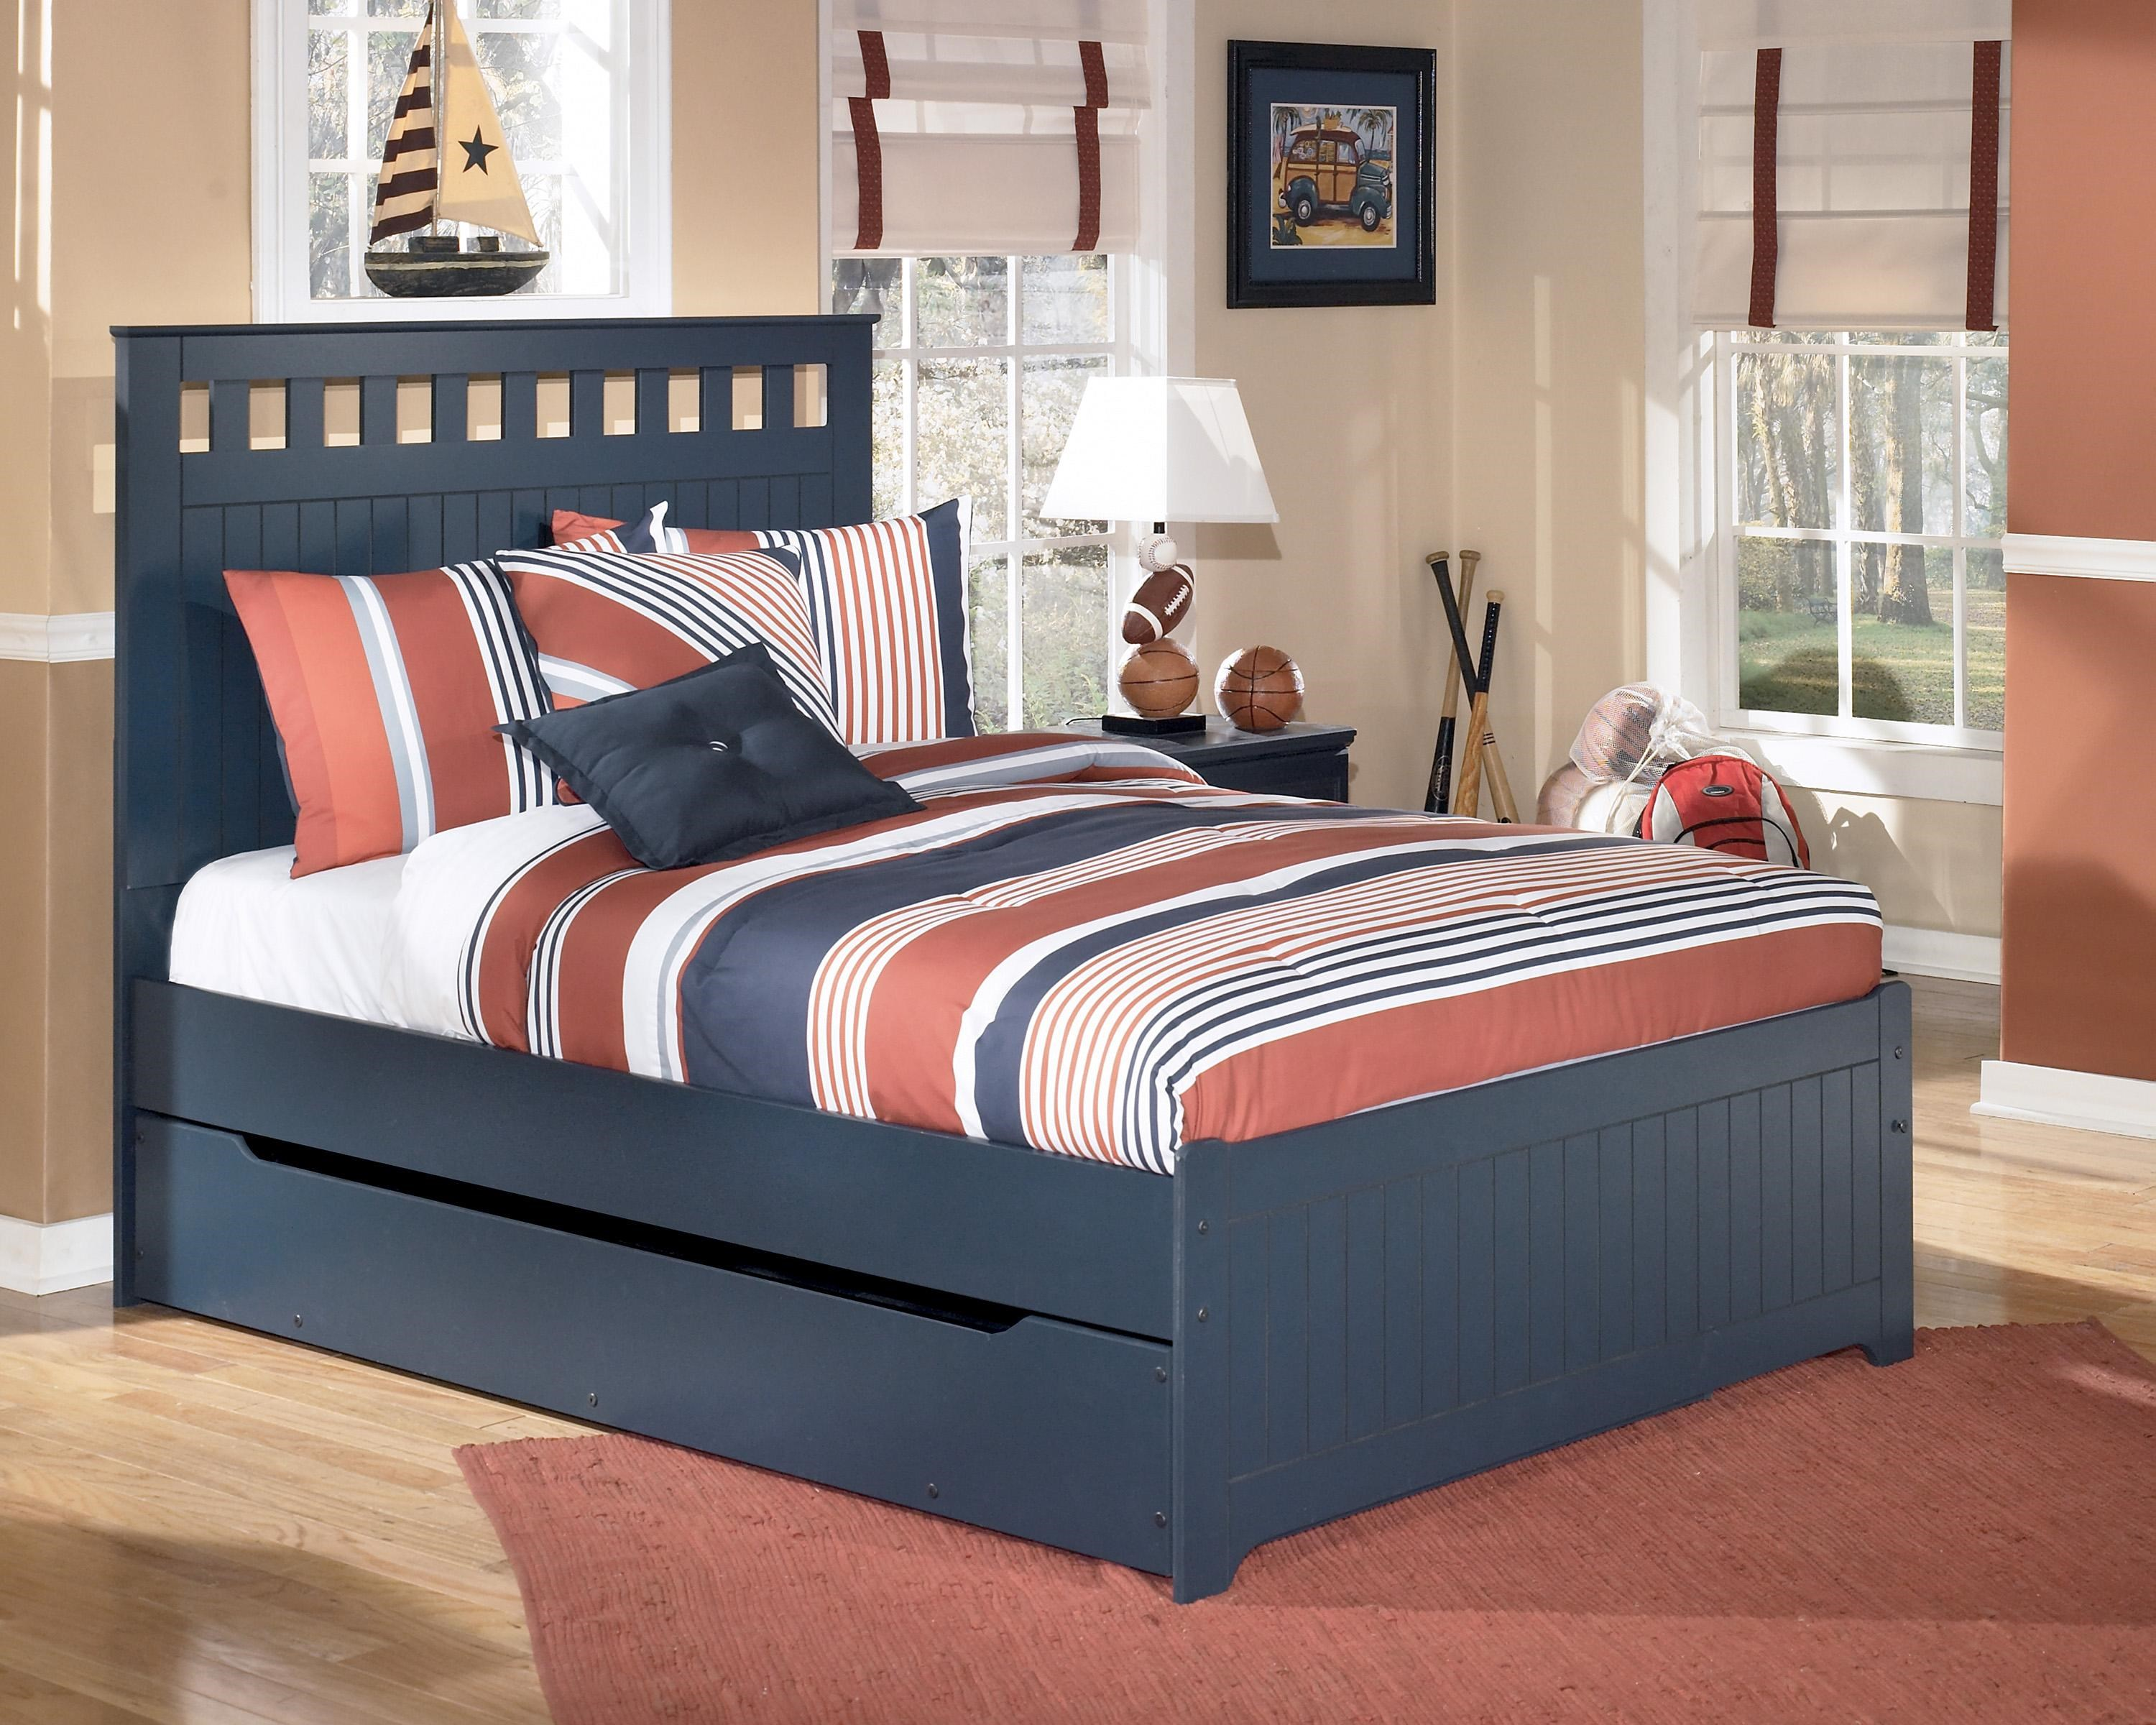 Signature Design by Ashley Leo Full Bed with Storage